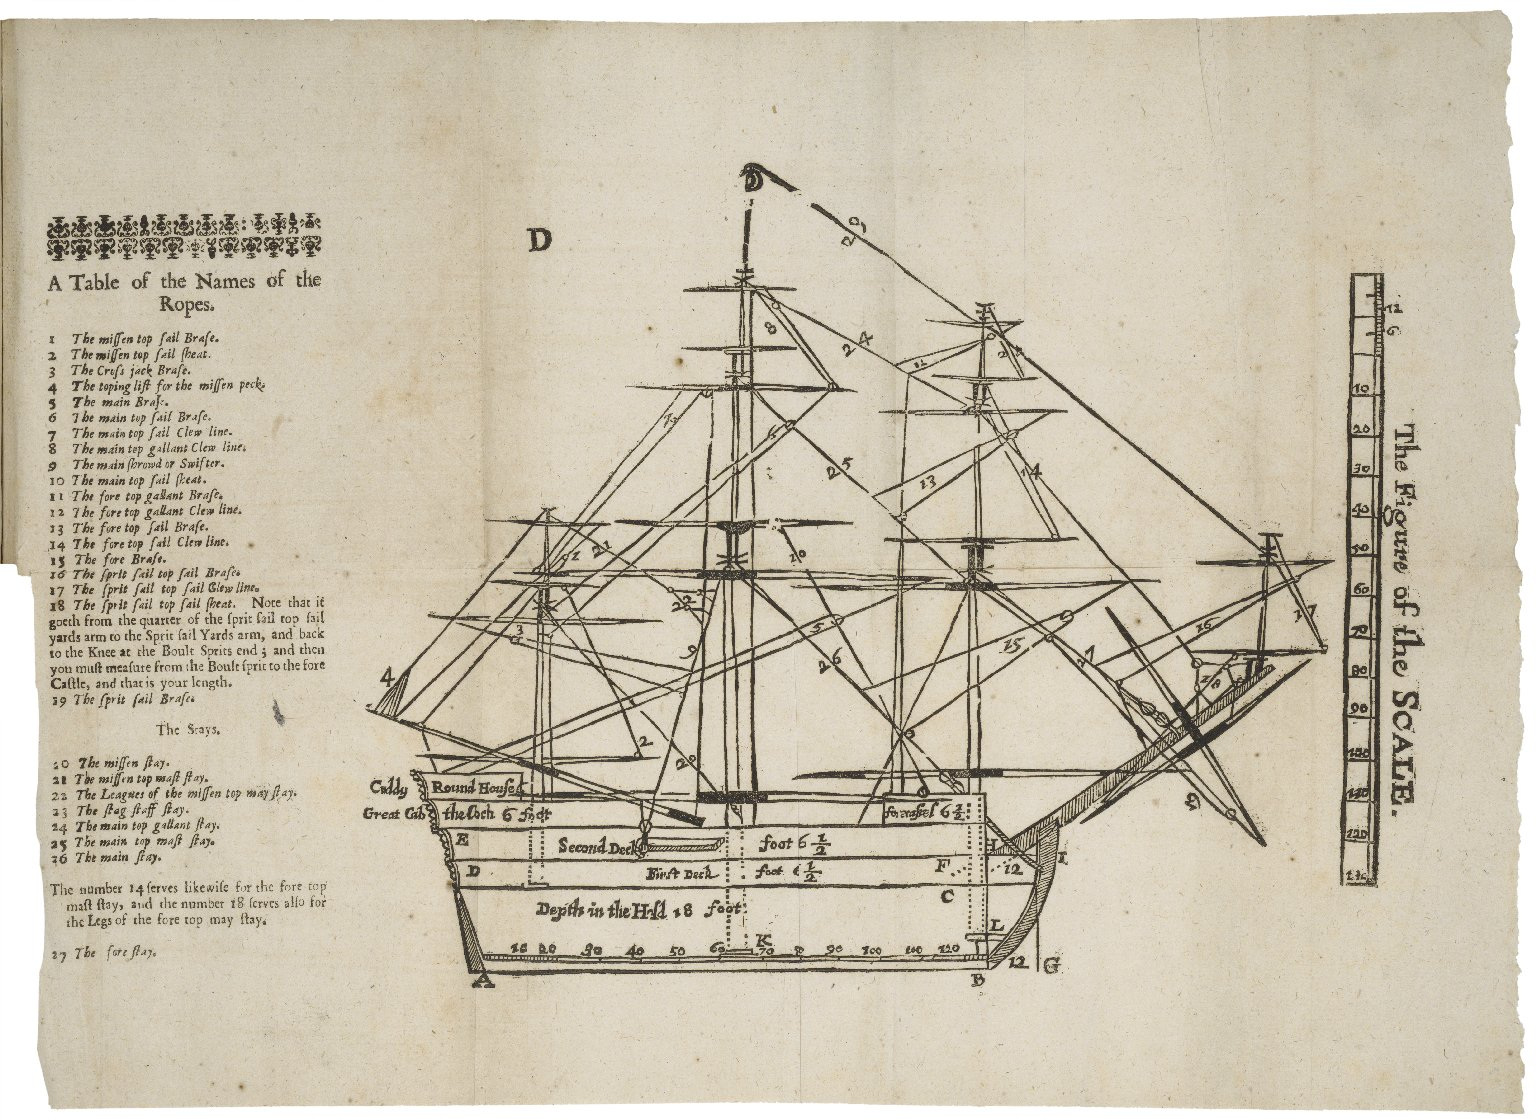 [Havenvending. English] The hauen-finding art, or The vvay to find any hauen or place at sea, by the latitude and variation.